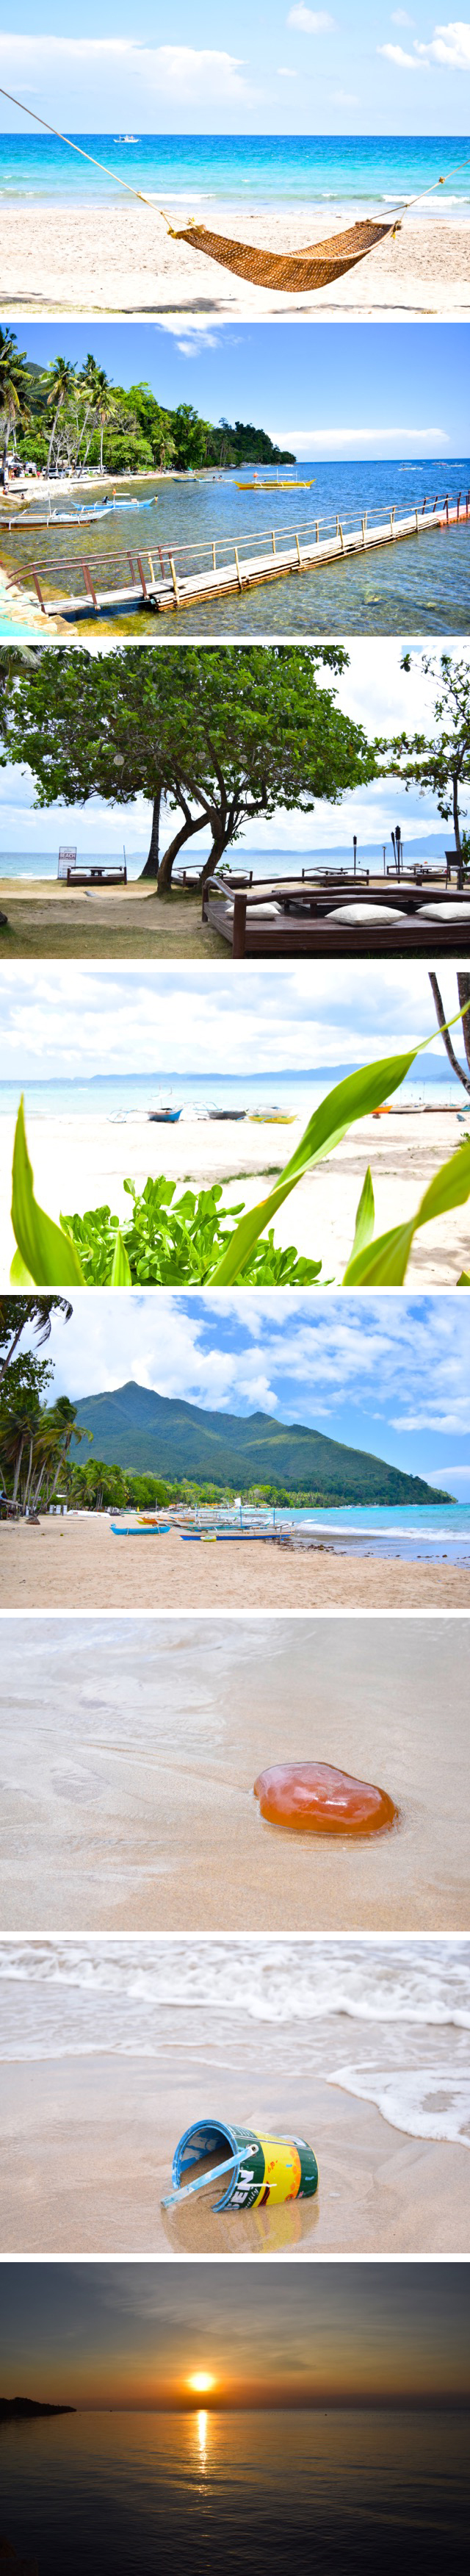 Beaches, sunsets and water (The Philippines)